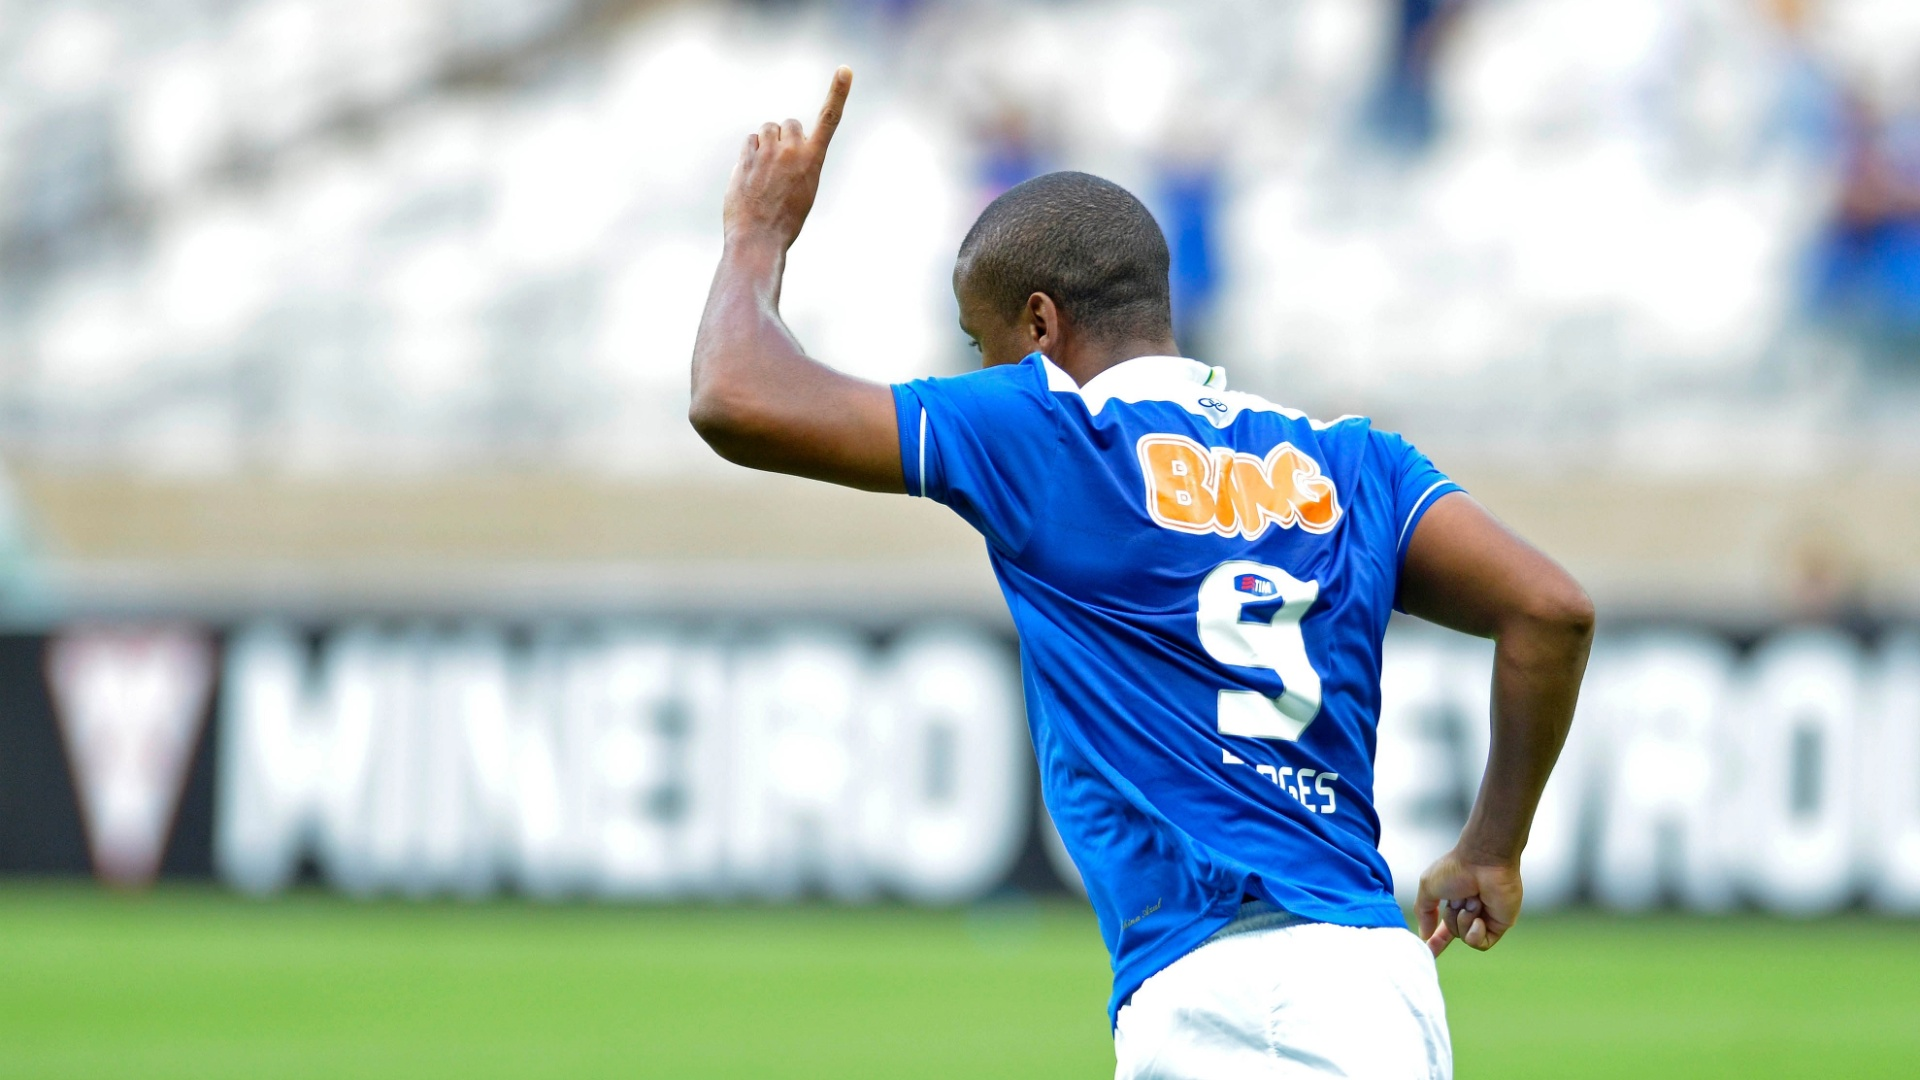 07/04/2013 - Borges comemora um dos dois gols marcados na goleada do Cruzeiro sobre o Amrica-MG